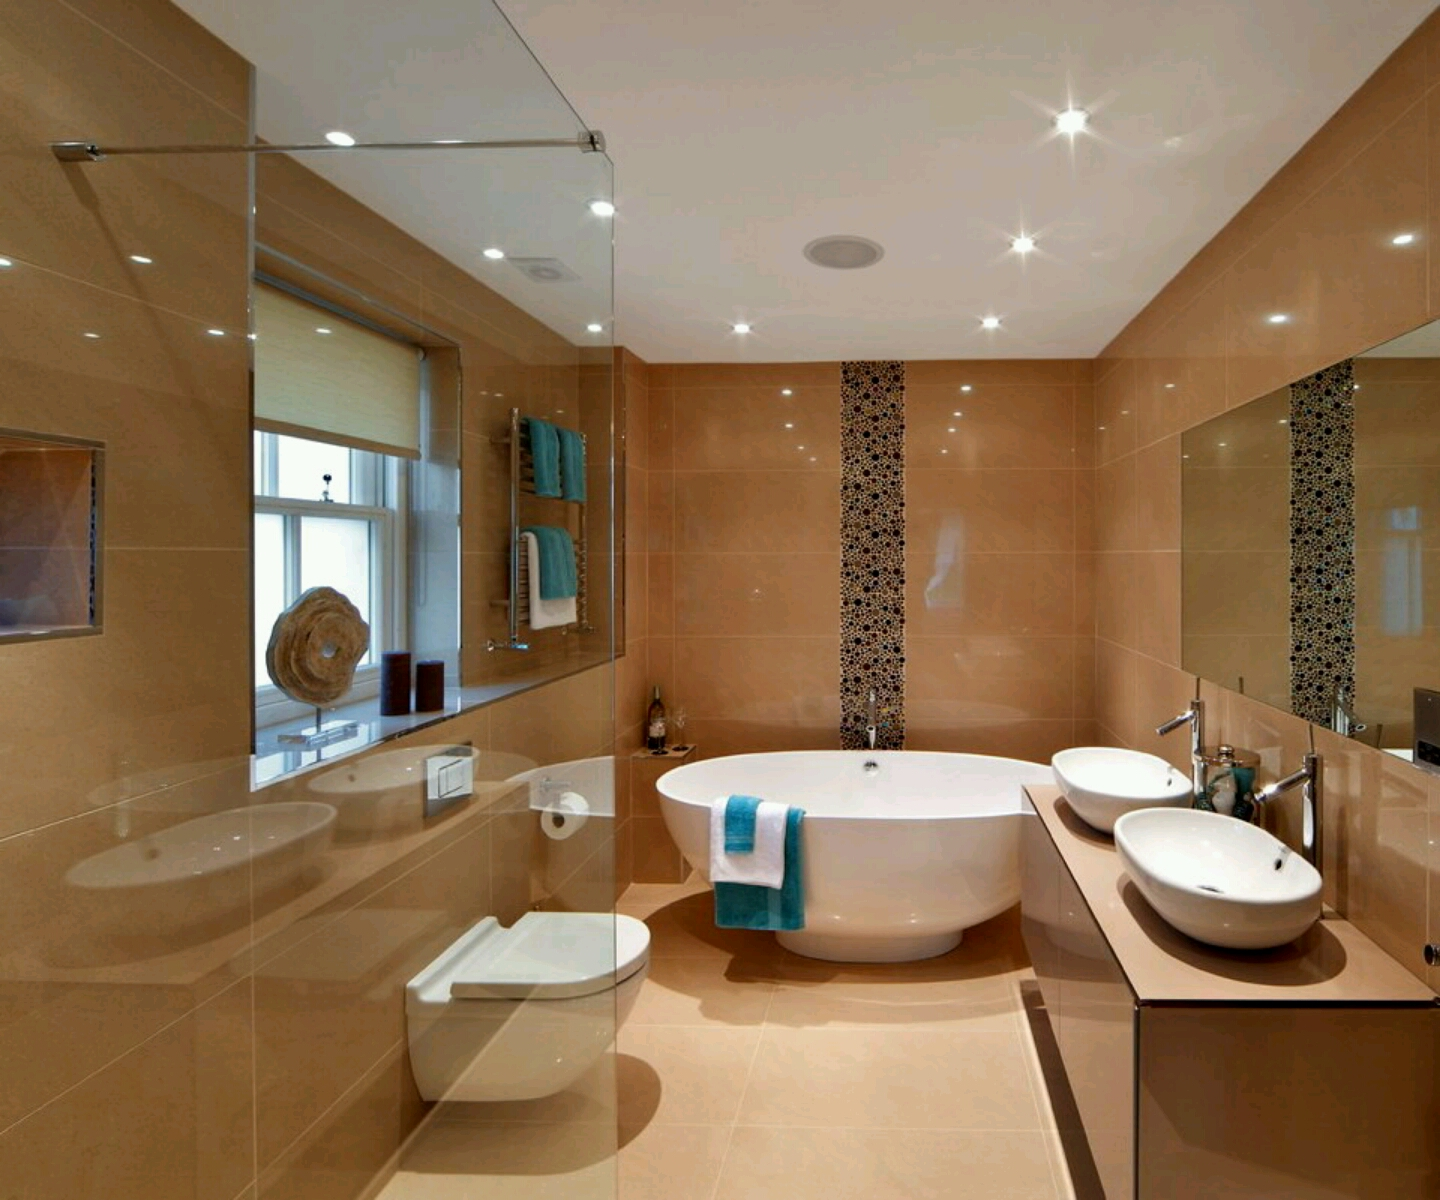 New home designs latest luxury modern bathrooms designs decoration ideas - Home bathrooms designs ...